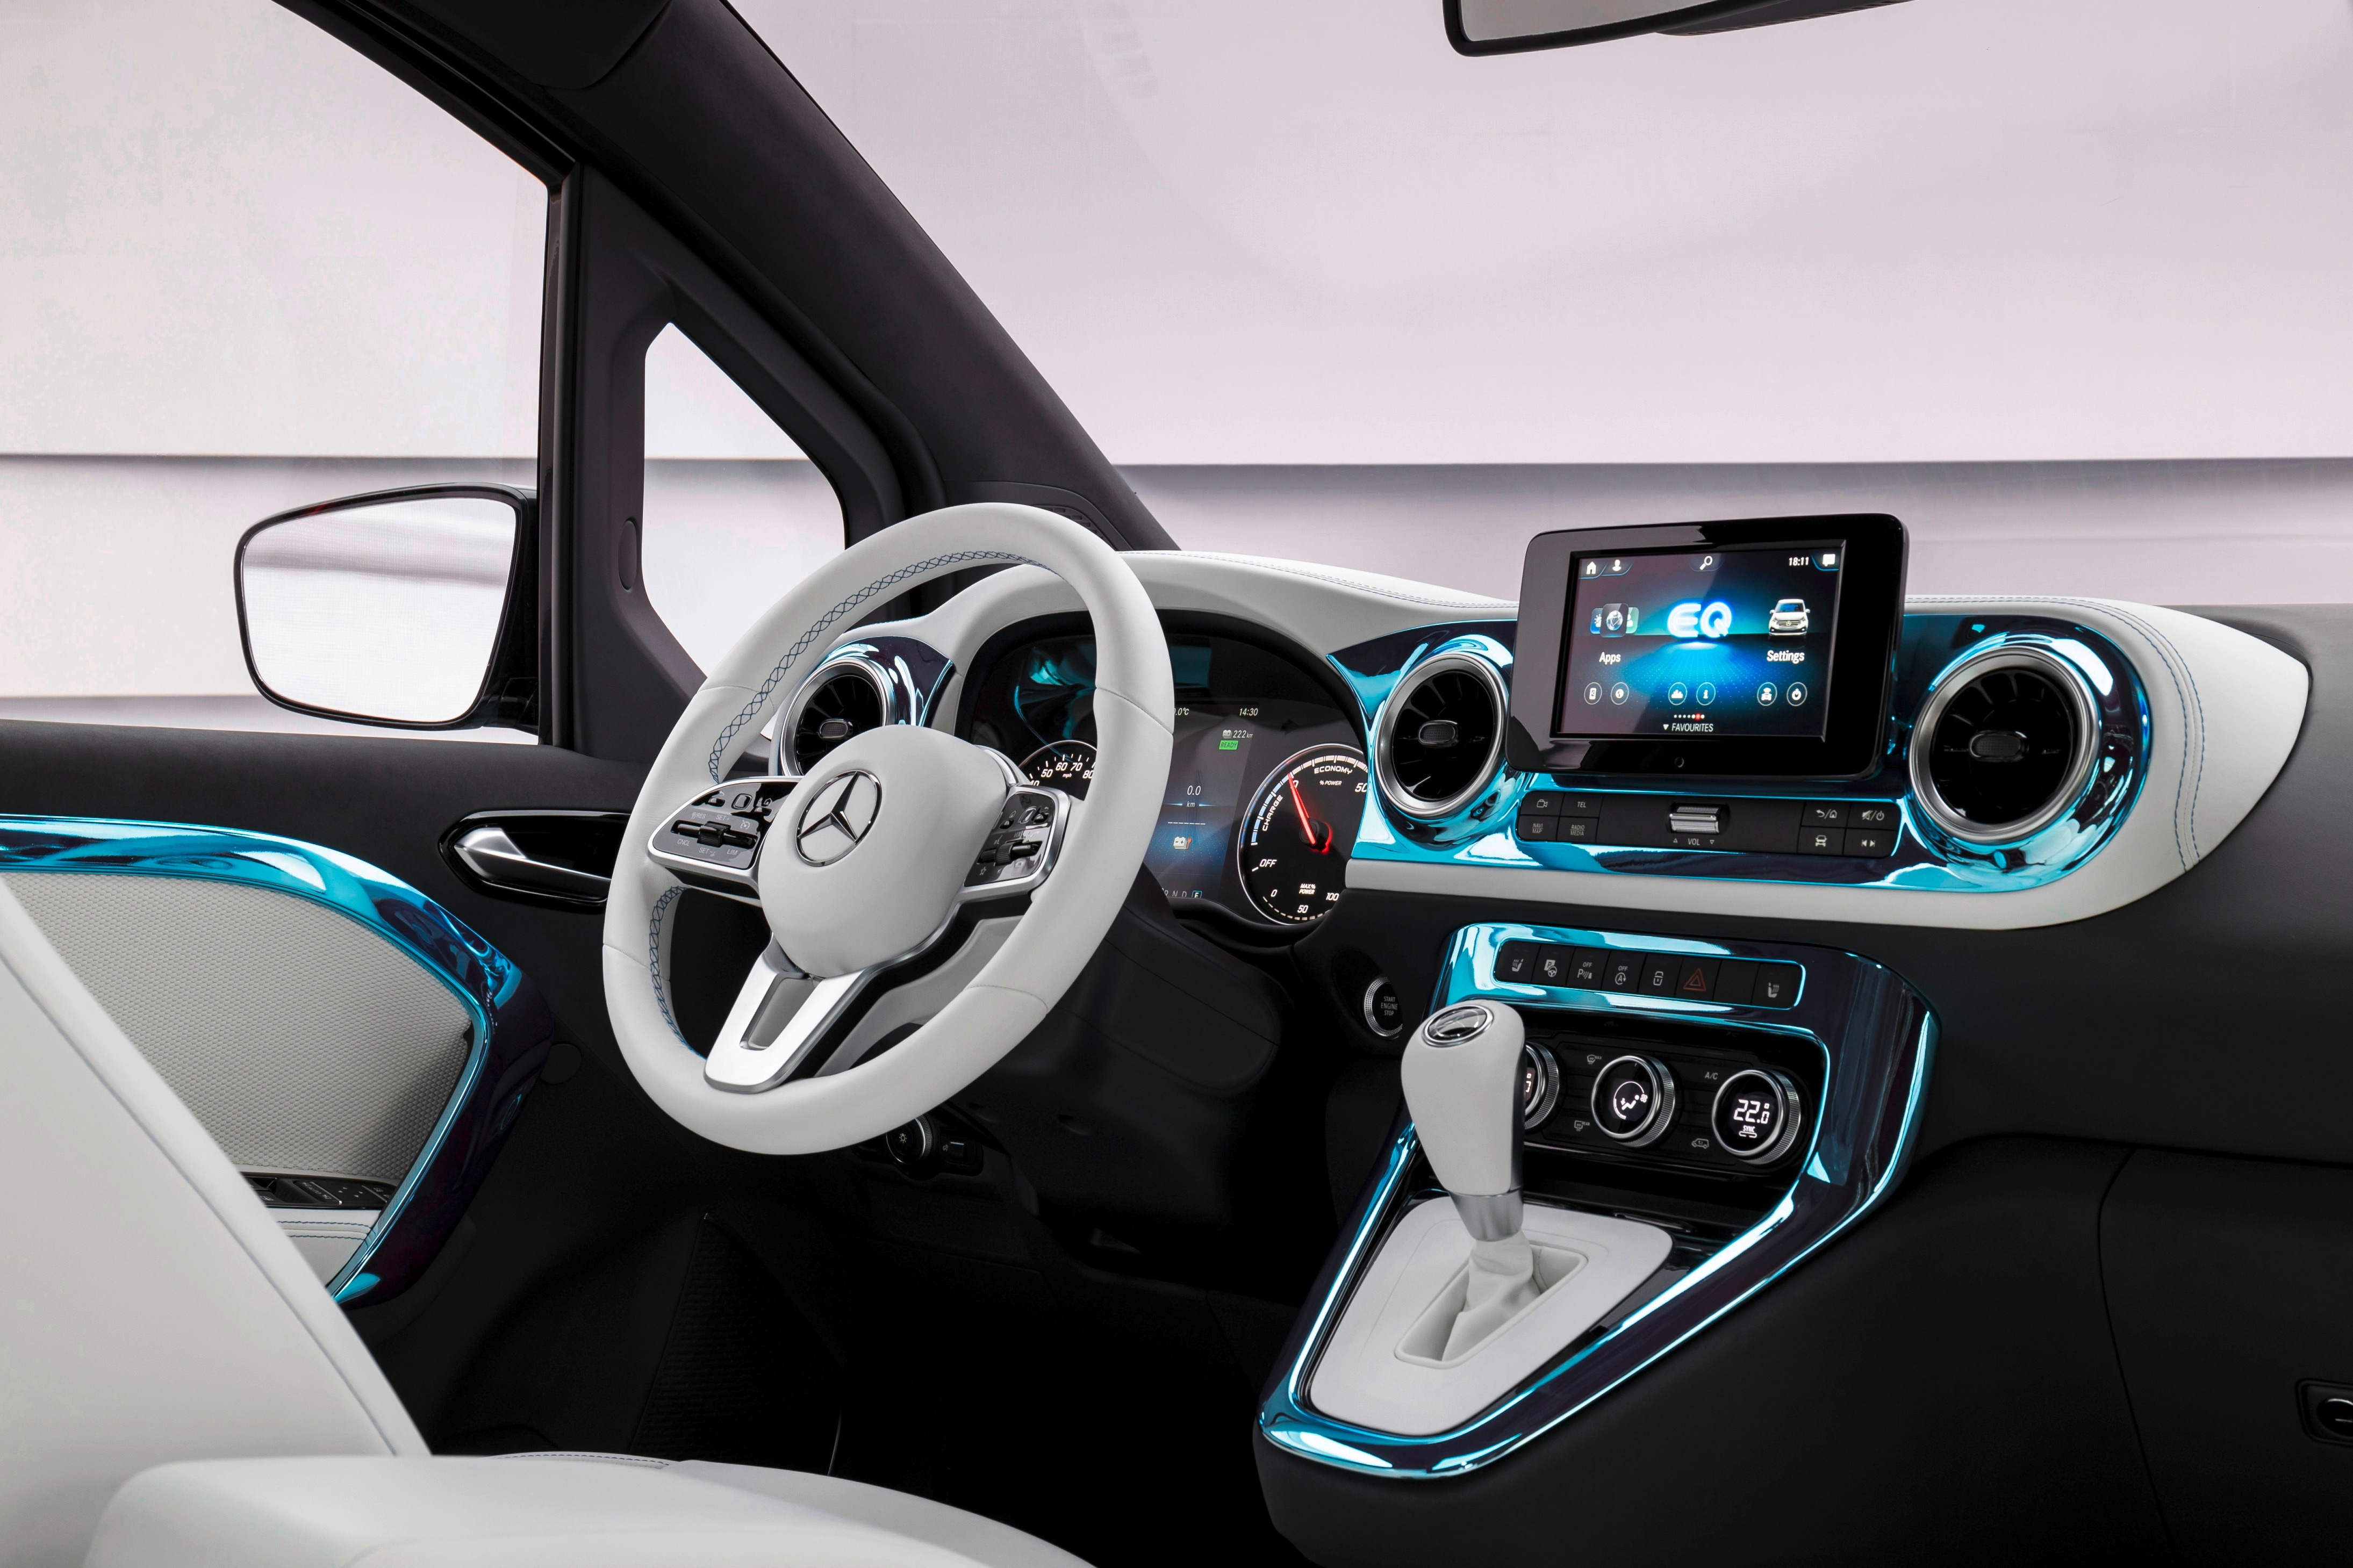 Above the instrument cluster there is a half-closed storage compartment for quick access to important utensils or documents. The ambient light on the center console, doors and in the footwell is supposed to create a stylish atmosphere.